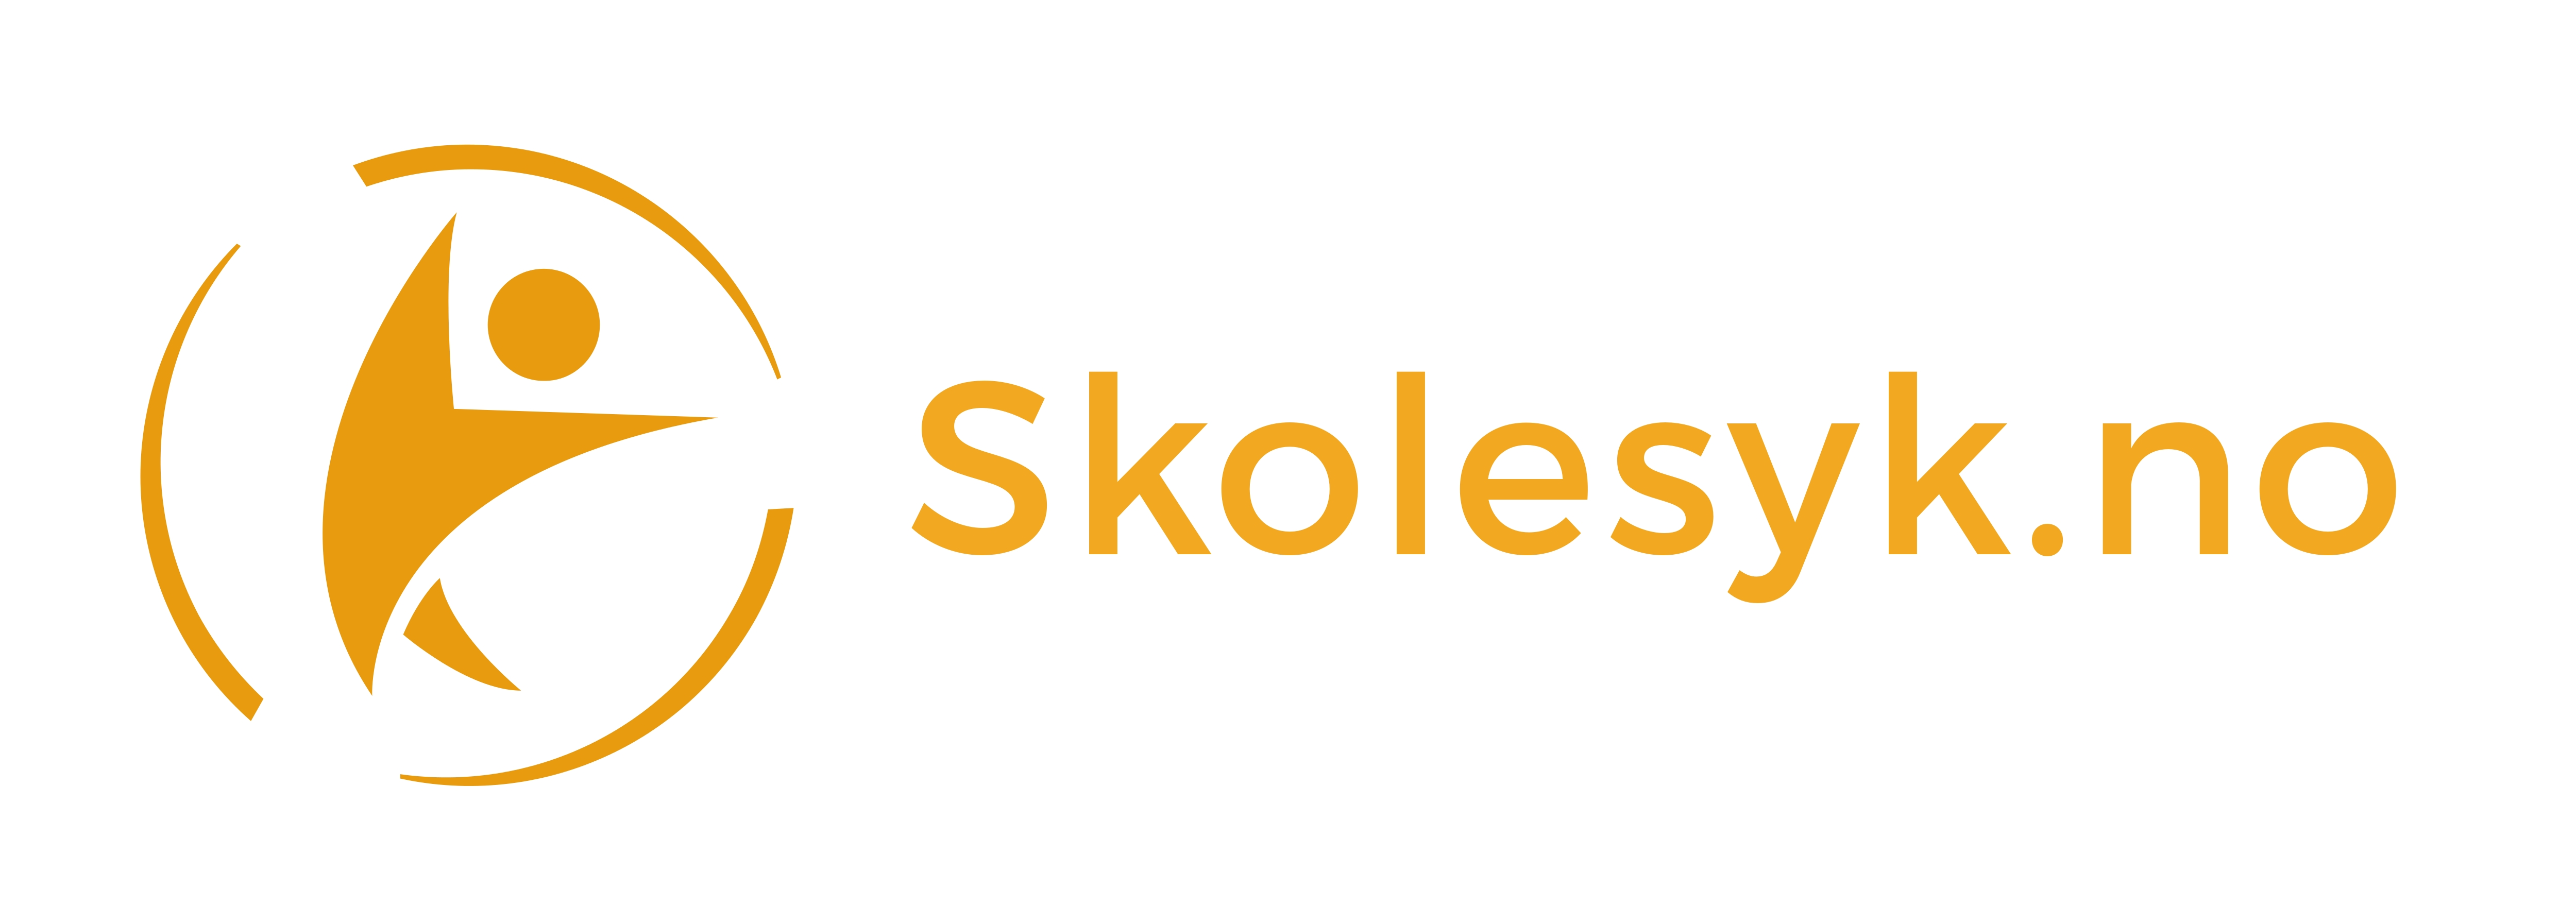 Skolesyk.no